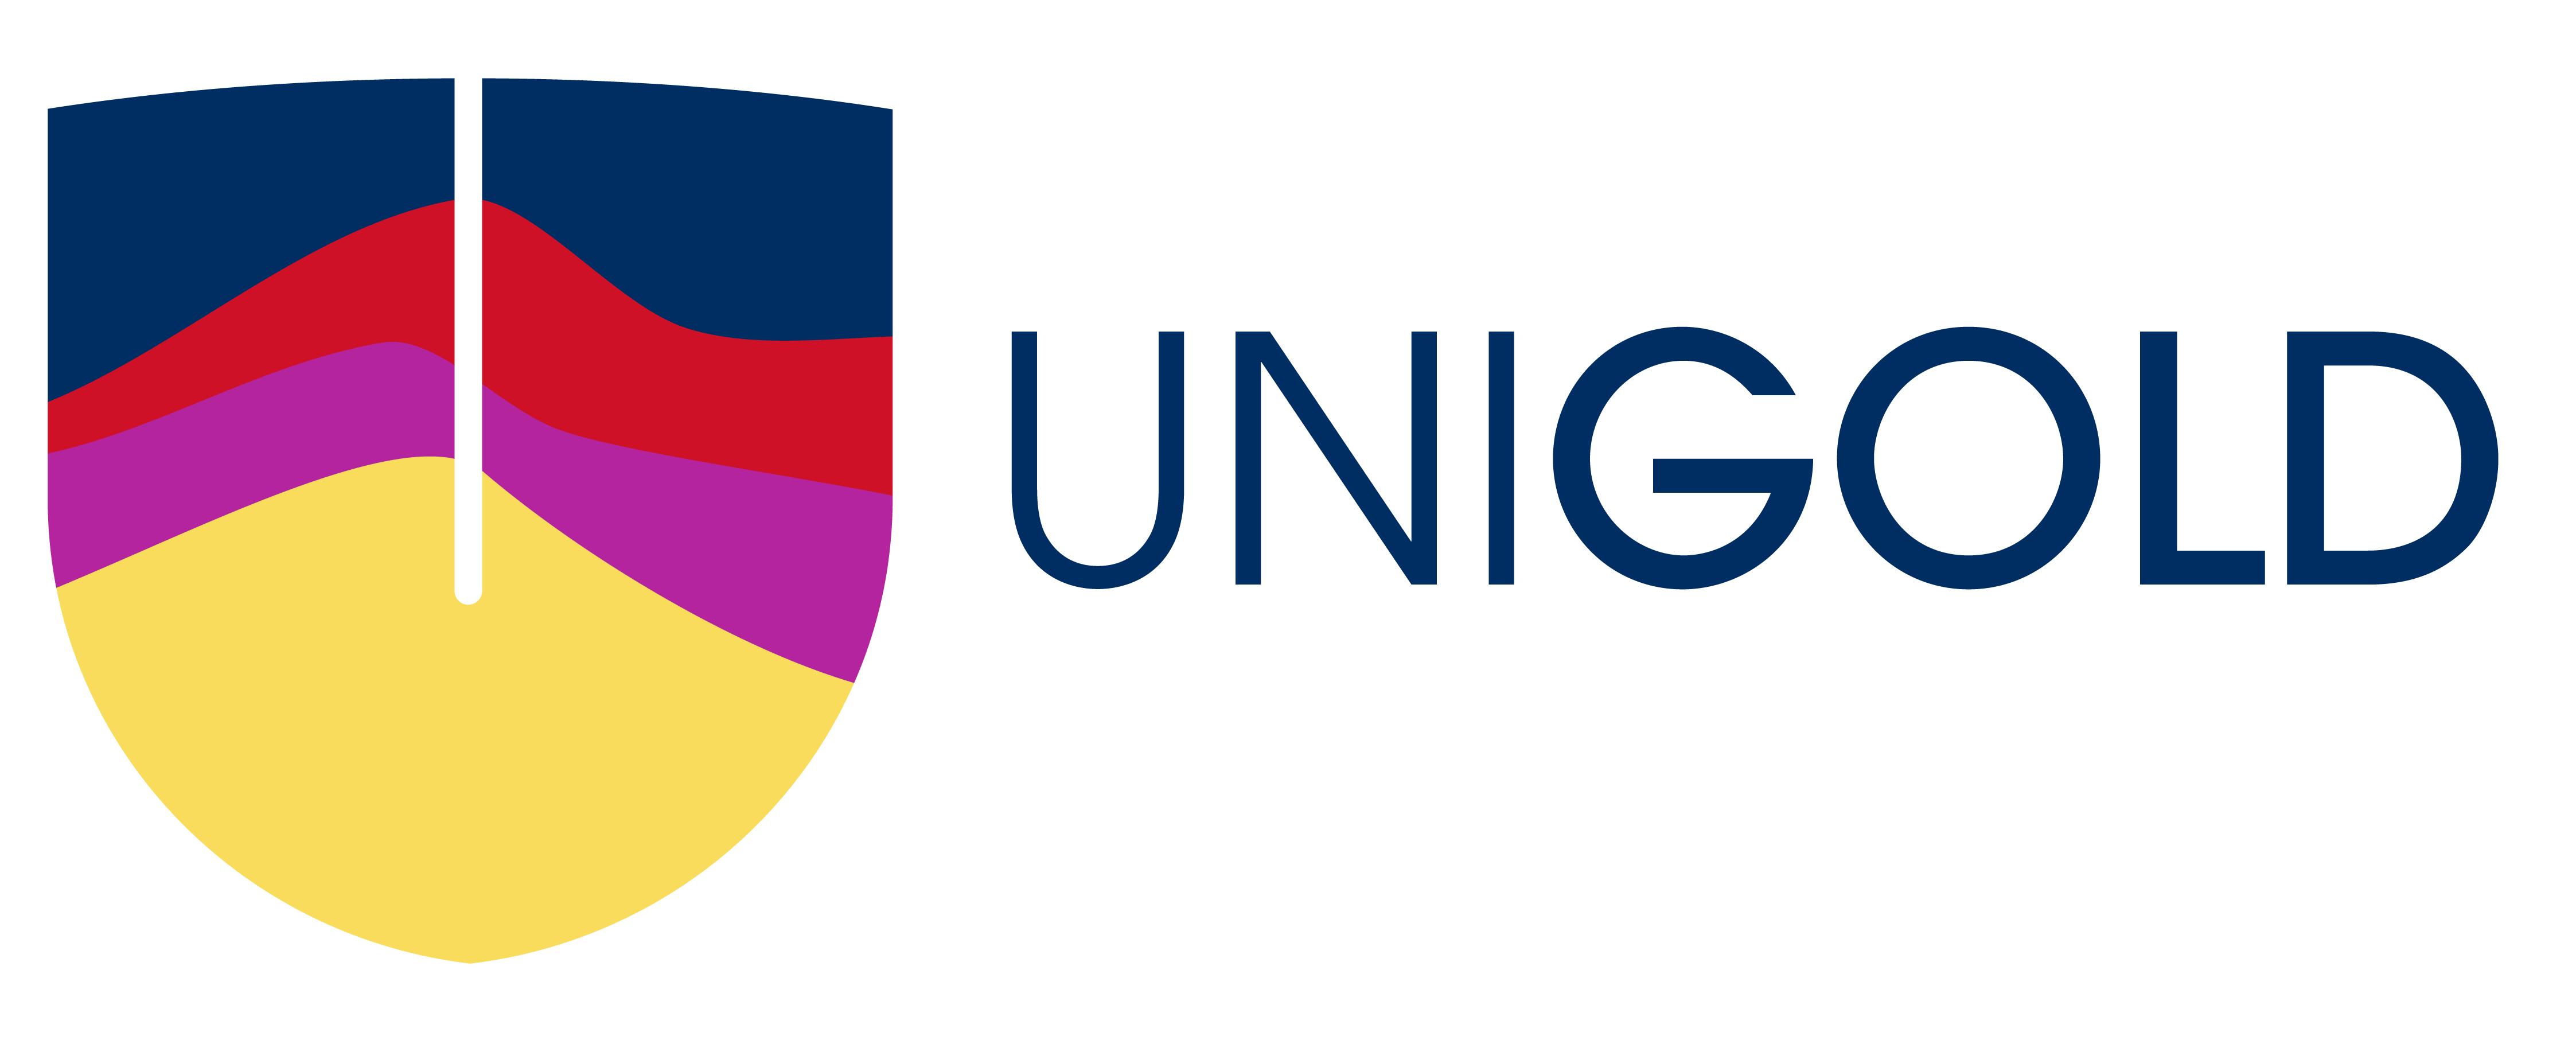 Unigold Identifies NEW, Near Surface, High Grade Mineralization at Candelones Extension